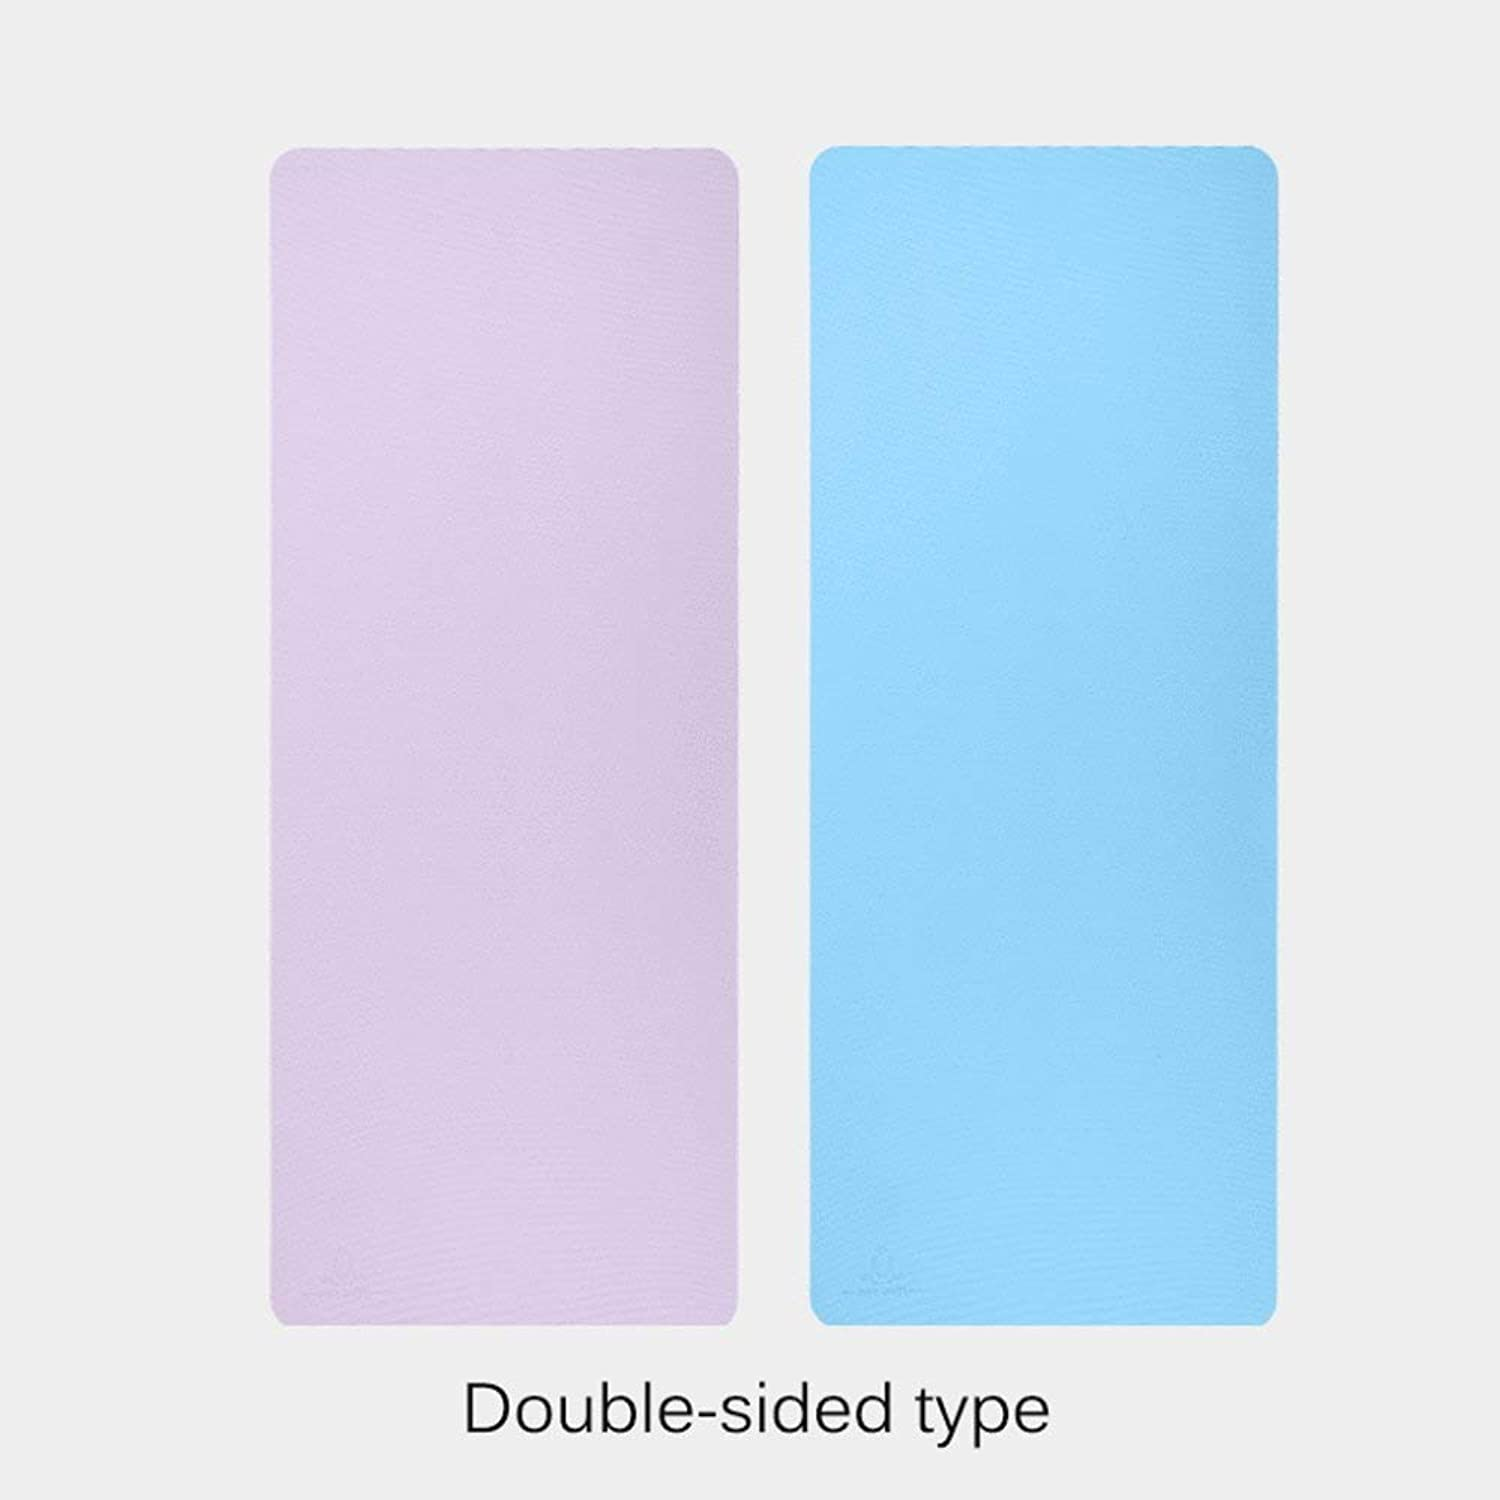 HONGSHENG Doppelsided Yoga Mat Soft Non-Slip Body Line Can Be Used On Both Sides, Ultra-Thin 8MM Thickness, Perfect Yoga Pilates Mat,1